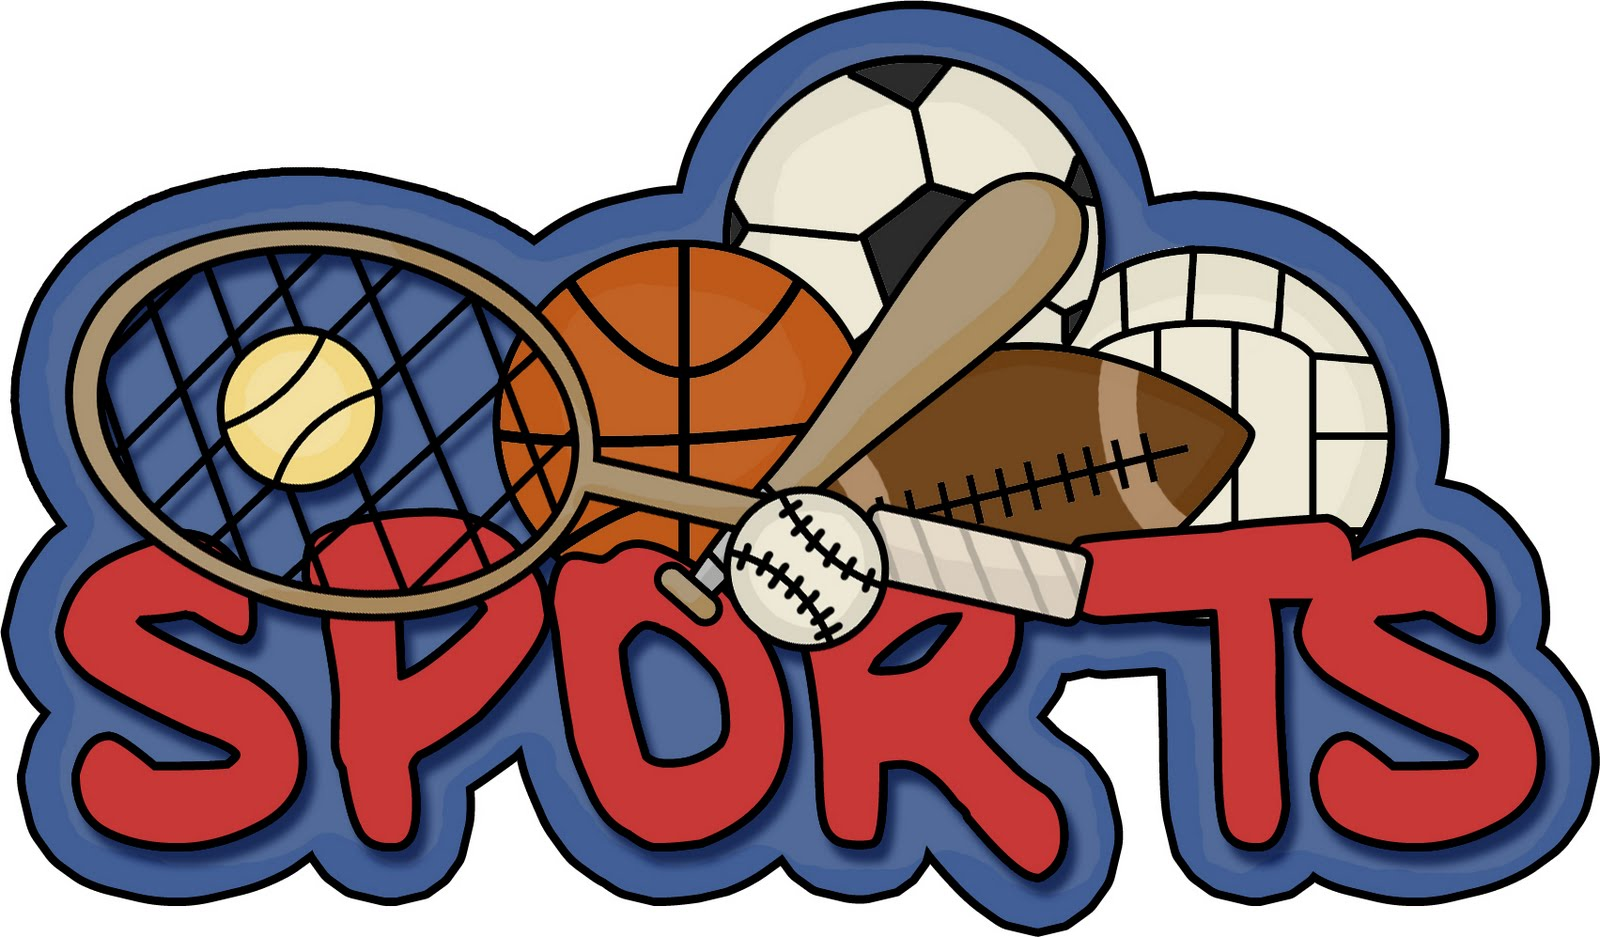 Words clipart sport. Free word cliparts download